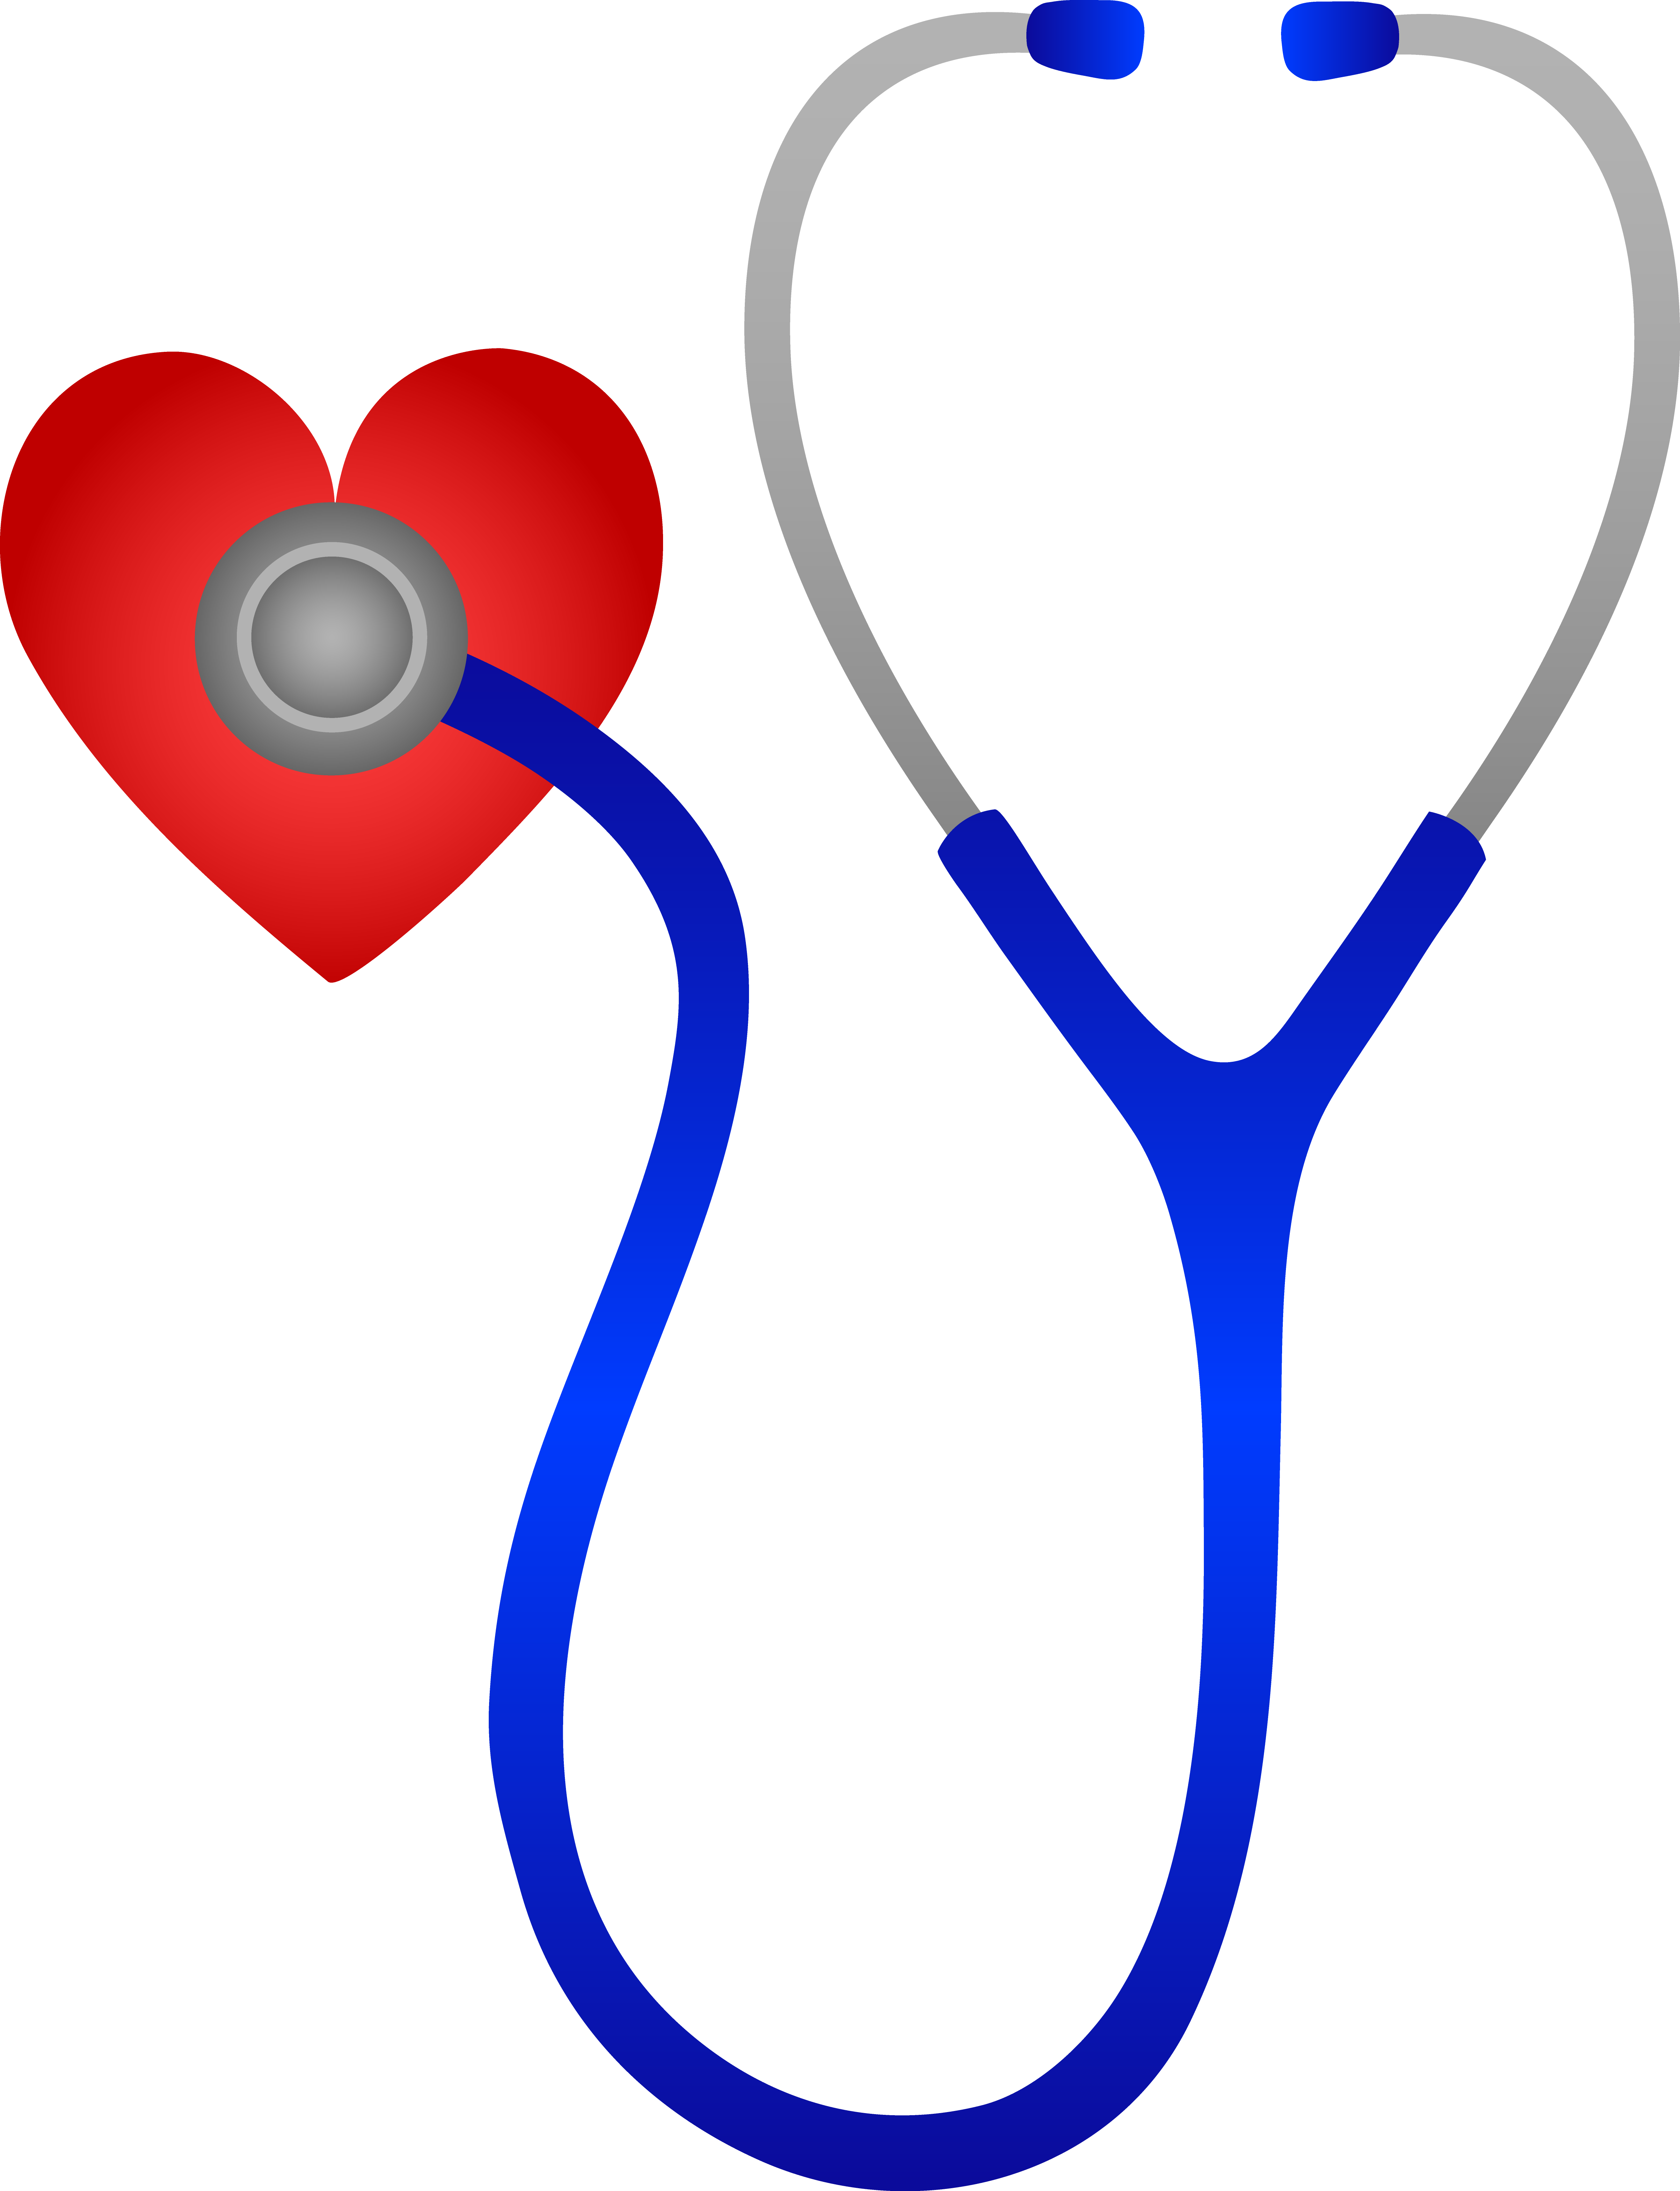 Red Barn Clip Art Transparent blue stethoscope and red heart | dr.❤ | pinterest | stethoscope